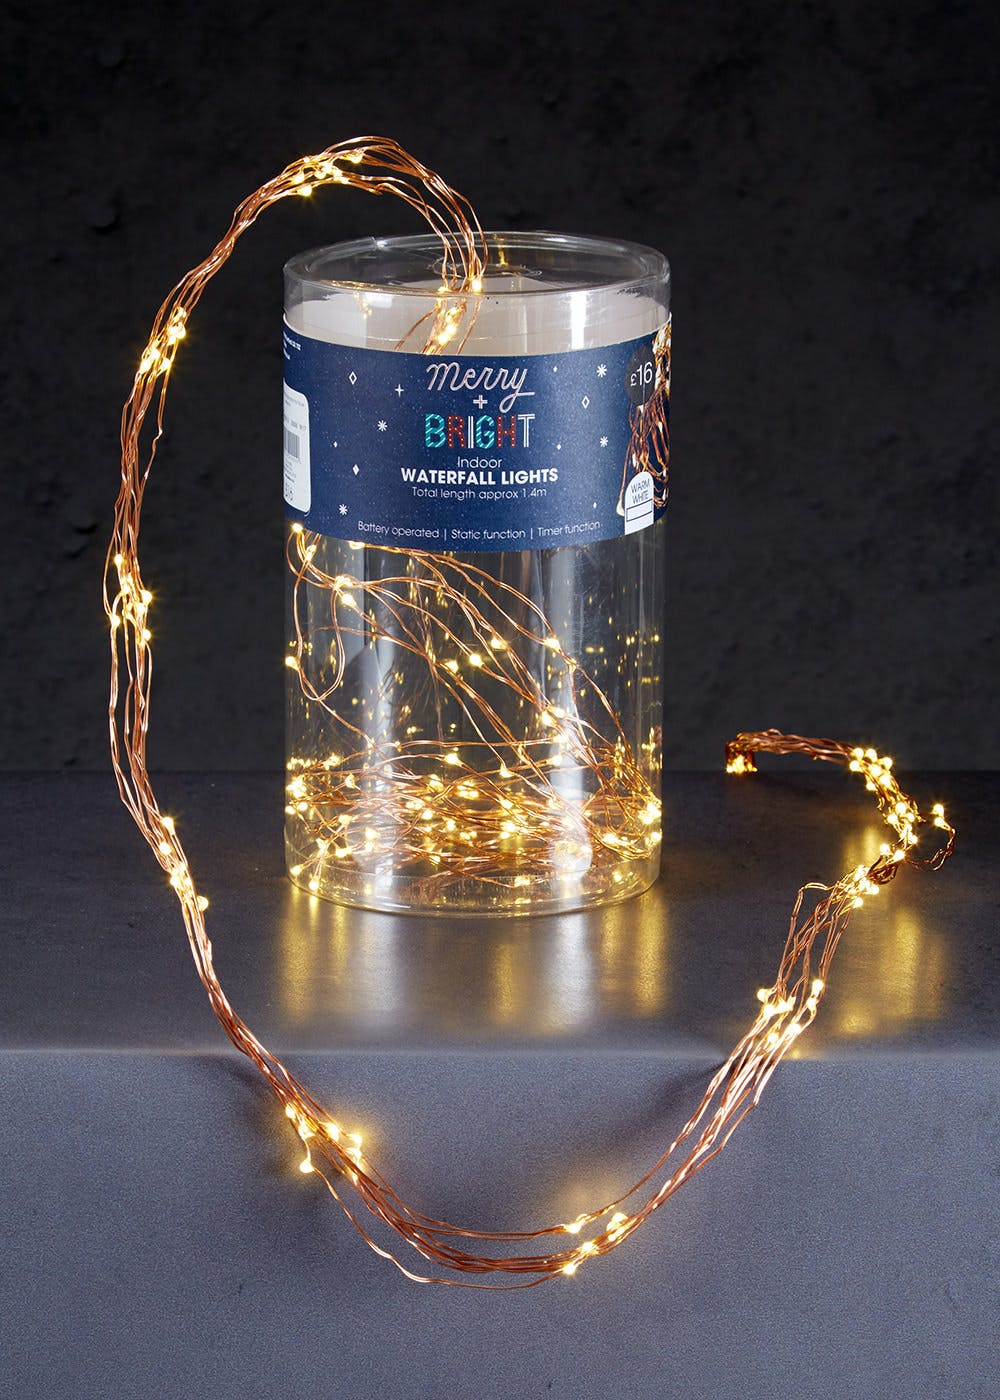 wire string christmas lights 14m - Waterfall Christmas Lights